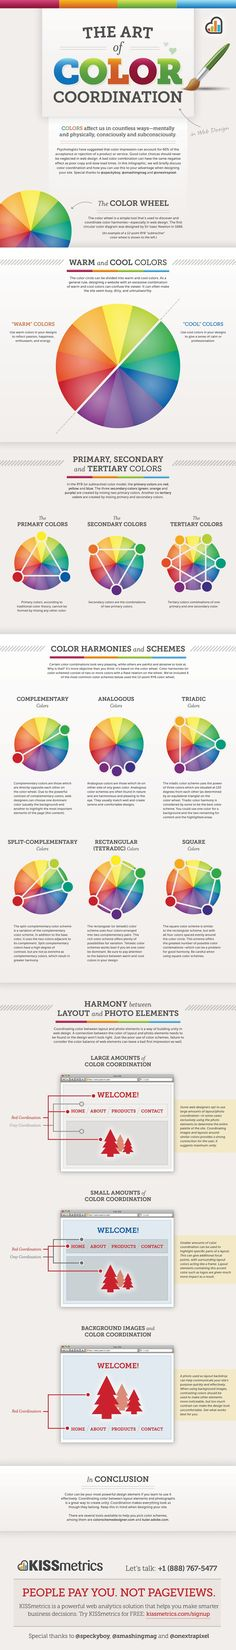 The Art of Colour Coordination | Infographic